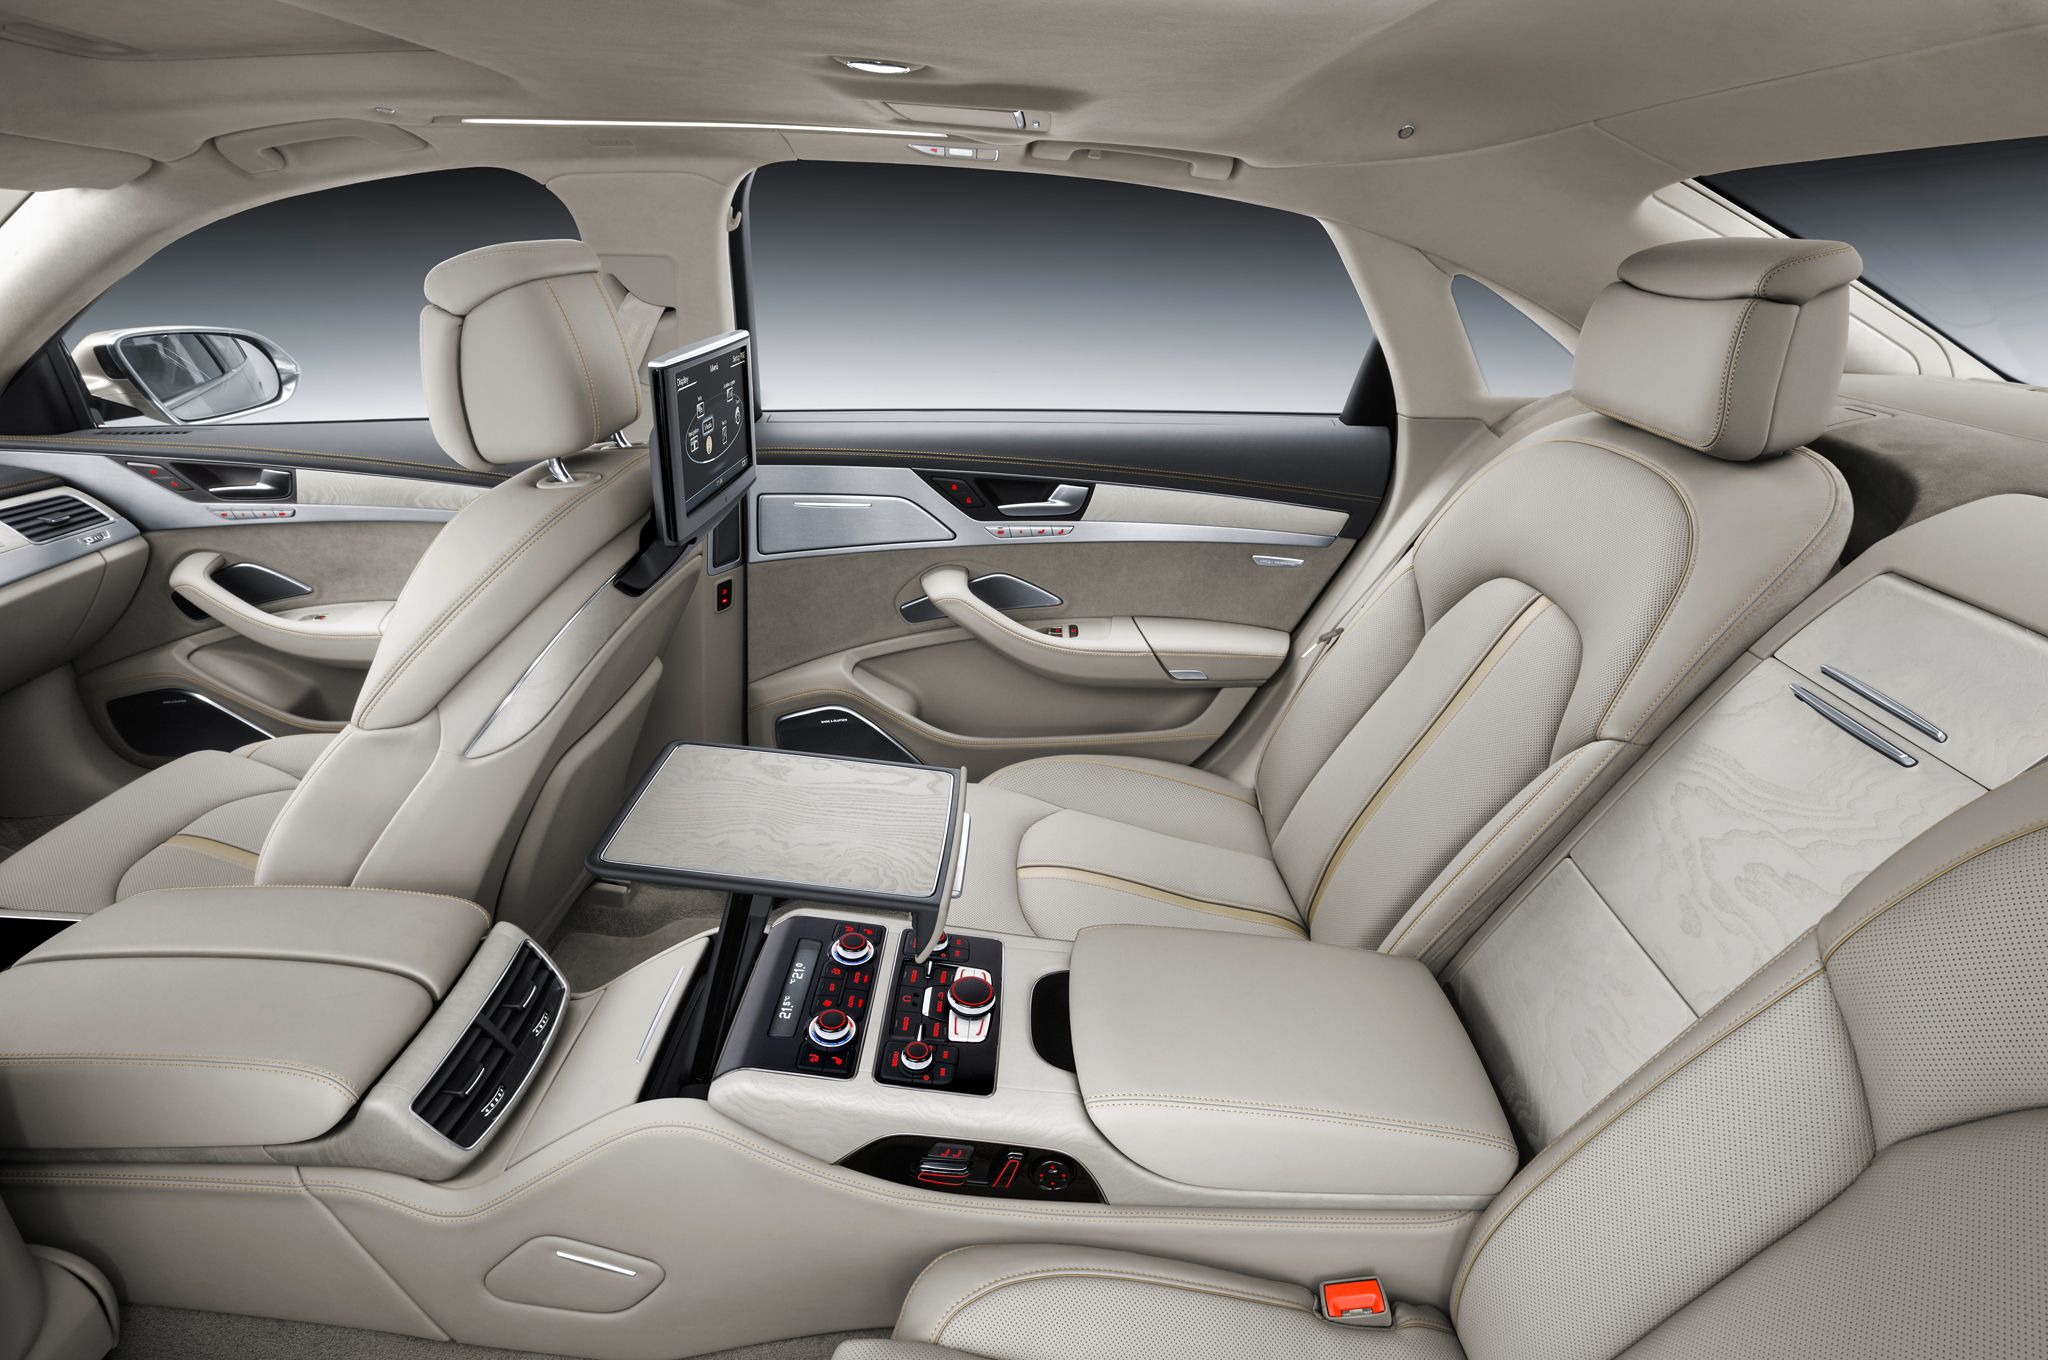 2015 Audi A8 Rear Interior Desktop Wallpaper Audi Wallpapers